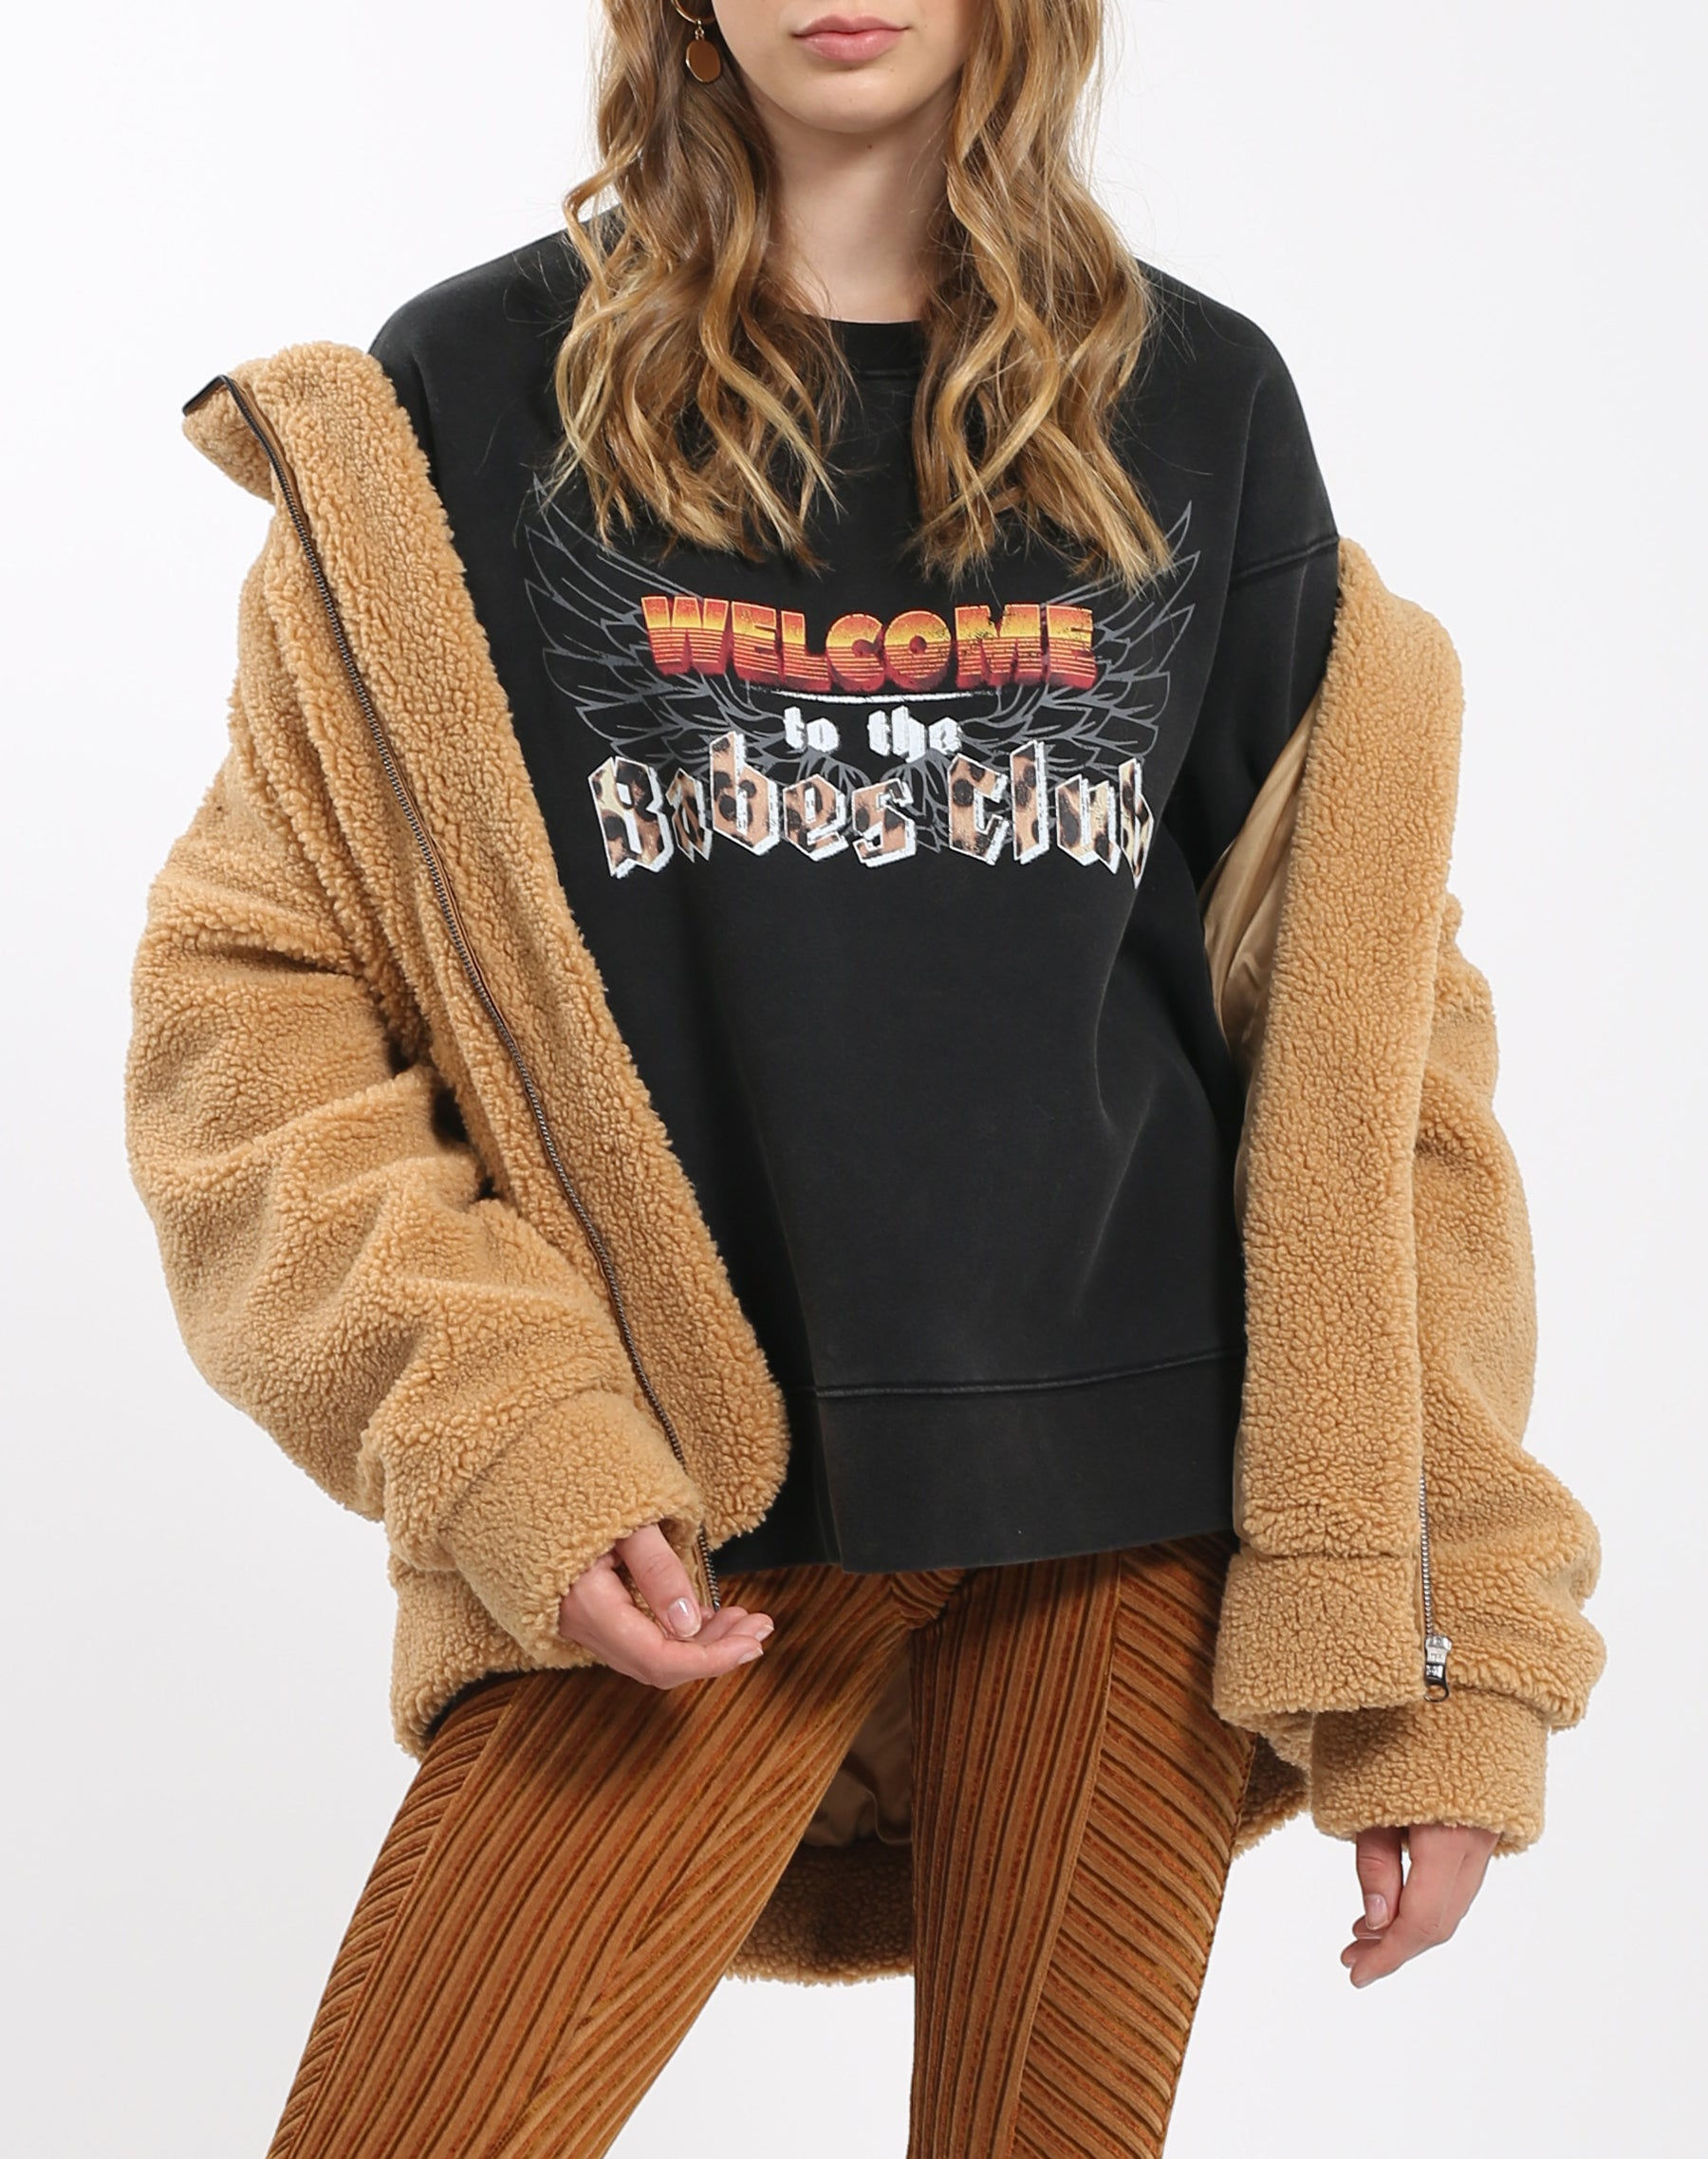 Photo 2 of the Welcome to the Babes Club step sister crew neck sweatshirt from The 1981 Collection by Brunette the Label.